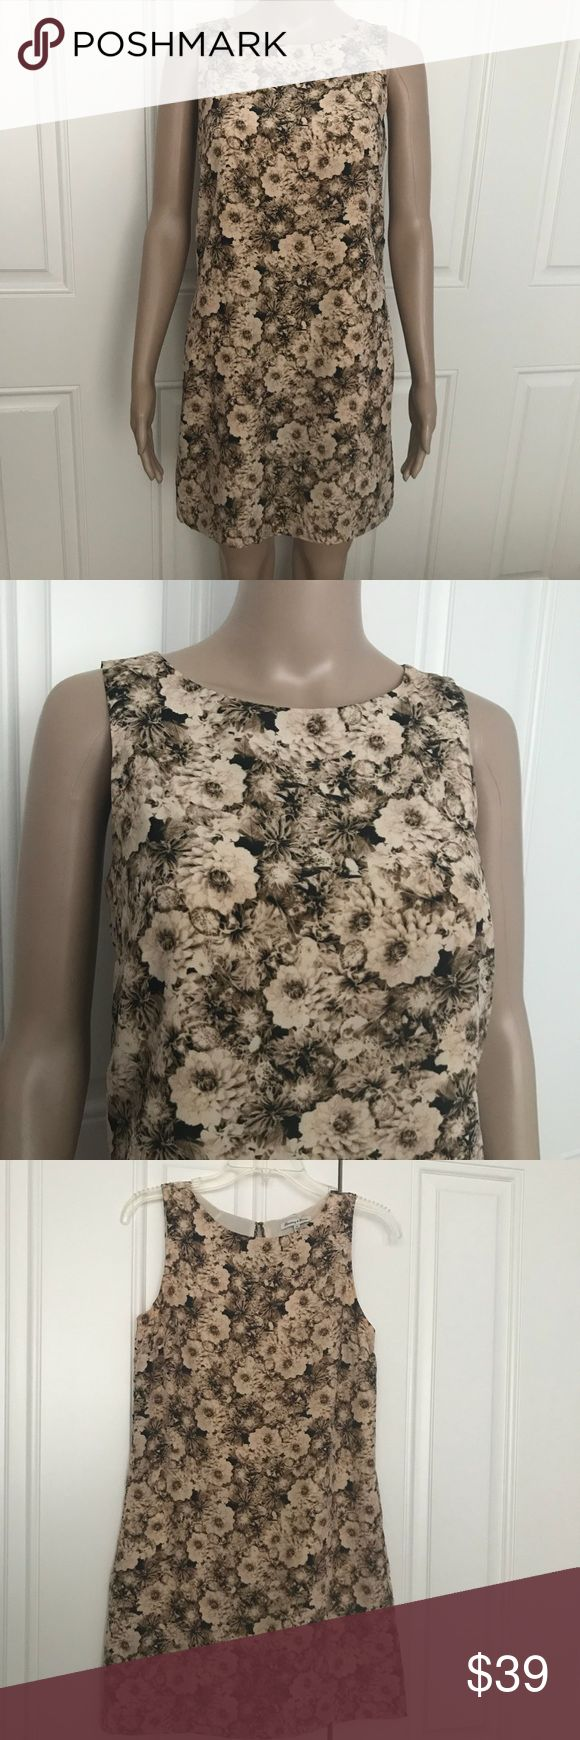 """Madewell Broadway & Broome silk floral dress XS Broadway & Broome Sepia 100% Silk Floral Sleeveless Shift Dress. Size XS. Dressis fully lined (lining made of polyester), pockets. Approximate measurements laying flat: armpit to armpit 16.5"""", hips 18"""", shoulder to hem length 32"""". Madewell Dresses Mini"""